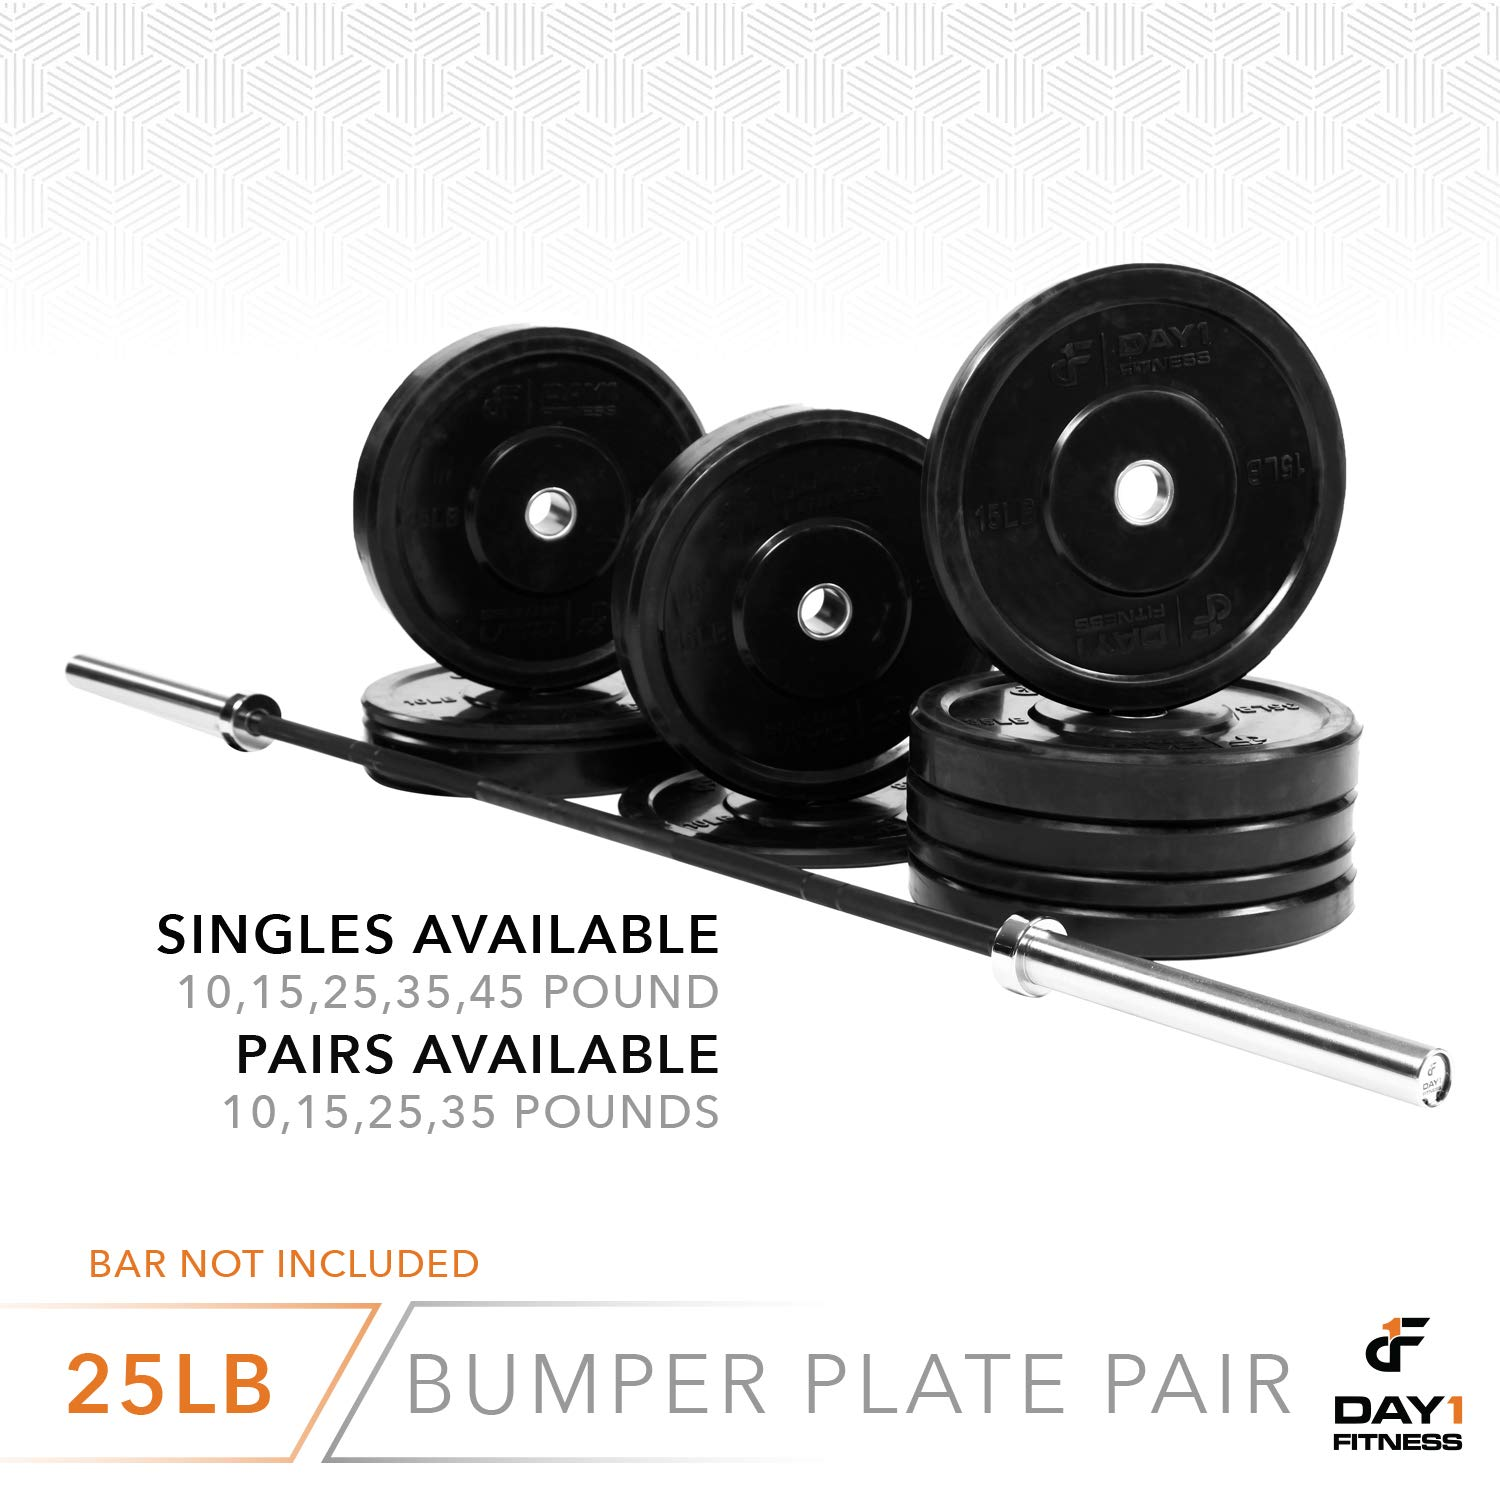 "Day 1 Fitness Olympic Bumper Weighted Plate 2"" for Barbells, Bars – 25 lb Set of 2 Plates - Shock-Absorbing, Minimal Bounce Steel Weights with Bumpers for Lifting, Strength Training, and Working Out by Day 1 Fitness (Image #6)"